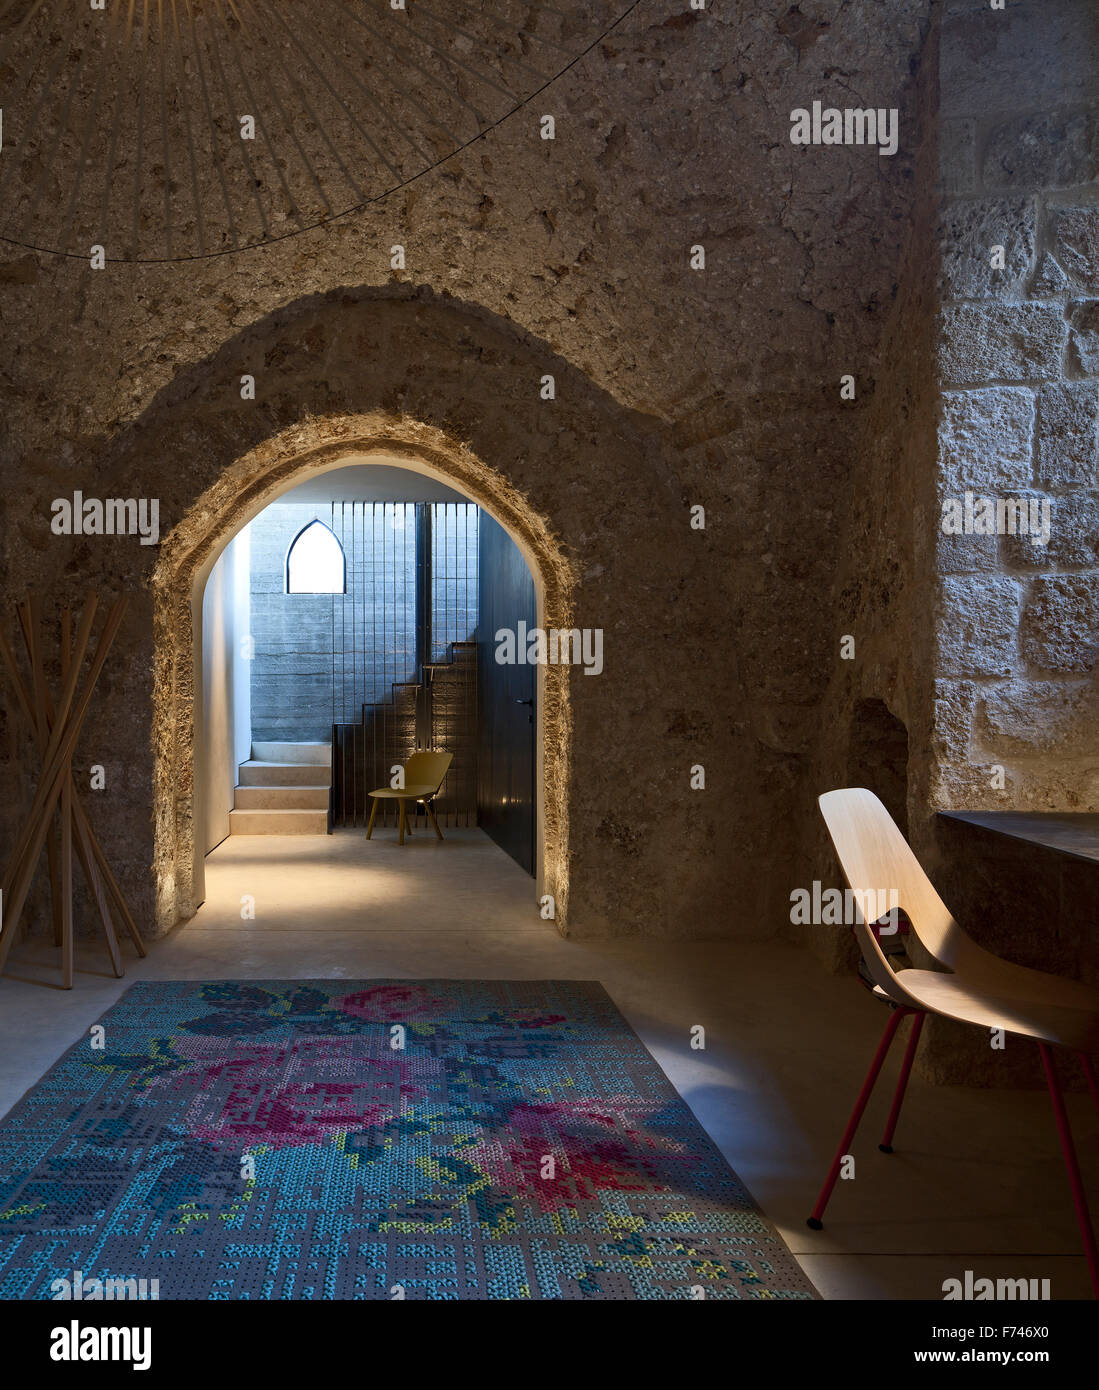 Stone interior arched doorway with floral rug in  House, Jaffa, Tel Aviv, Israel - Stock Image